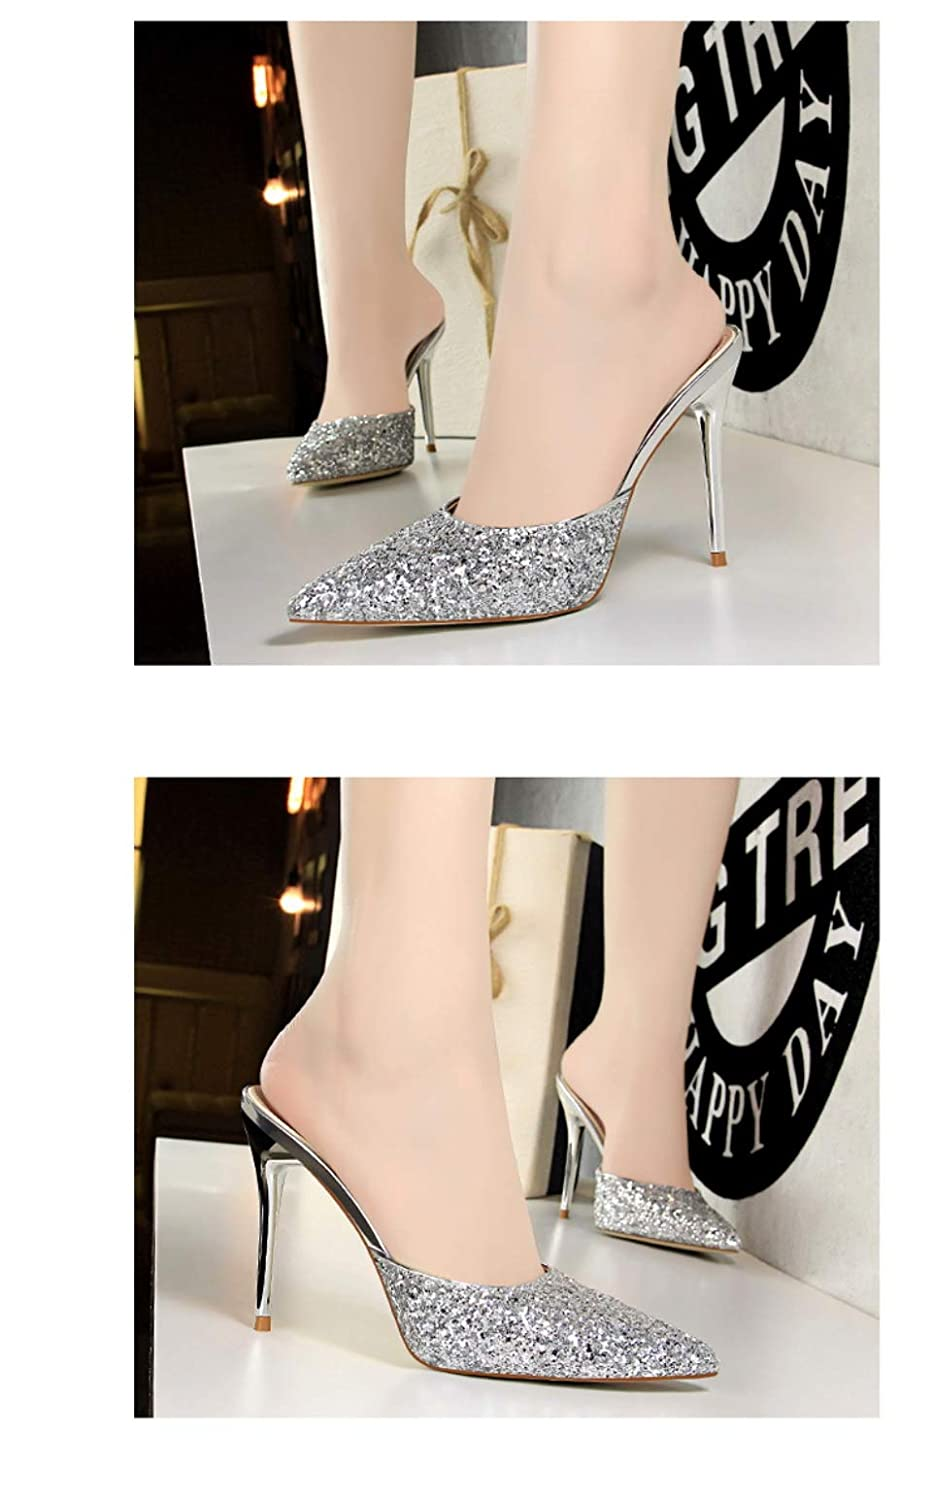 ZHEYU Women High Heels Wedding Pumps Pointed Toe Casual Female Shoes Ankle Strap Thin Heels Shoe New Plus Size